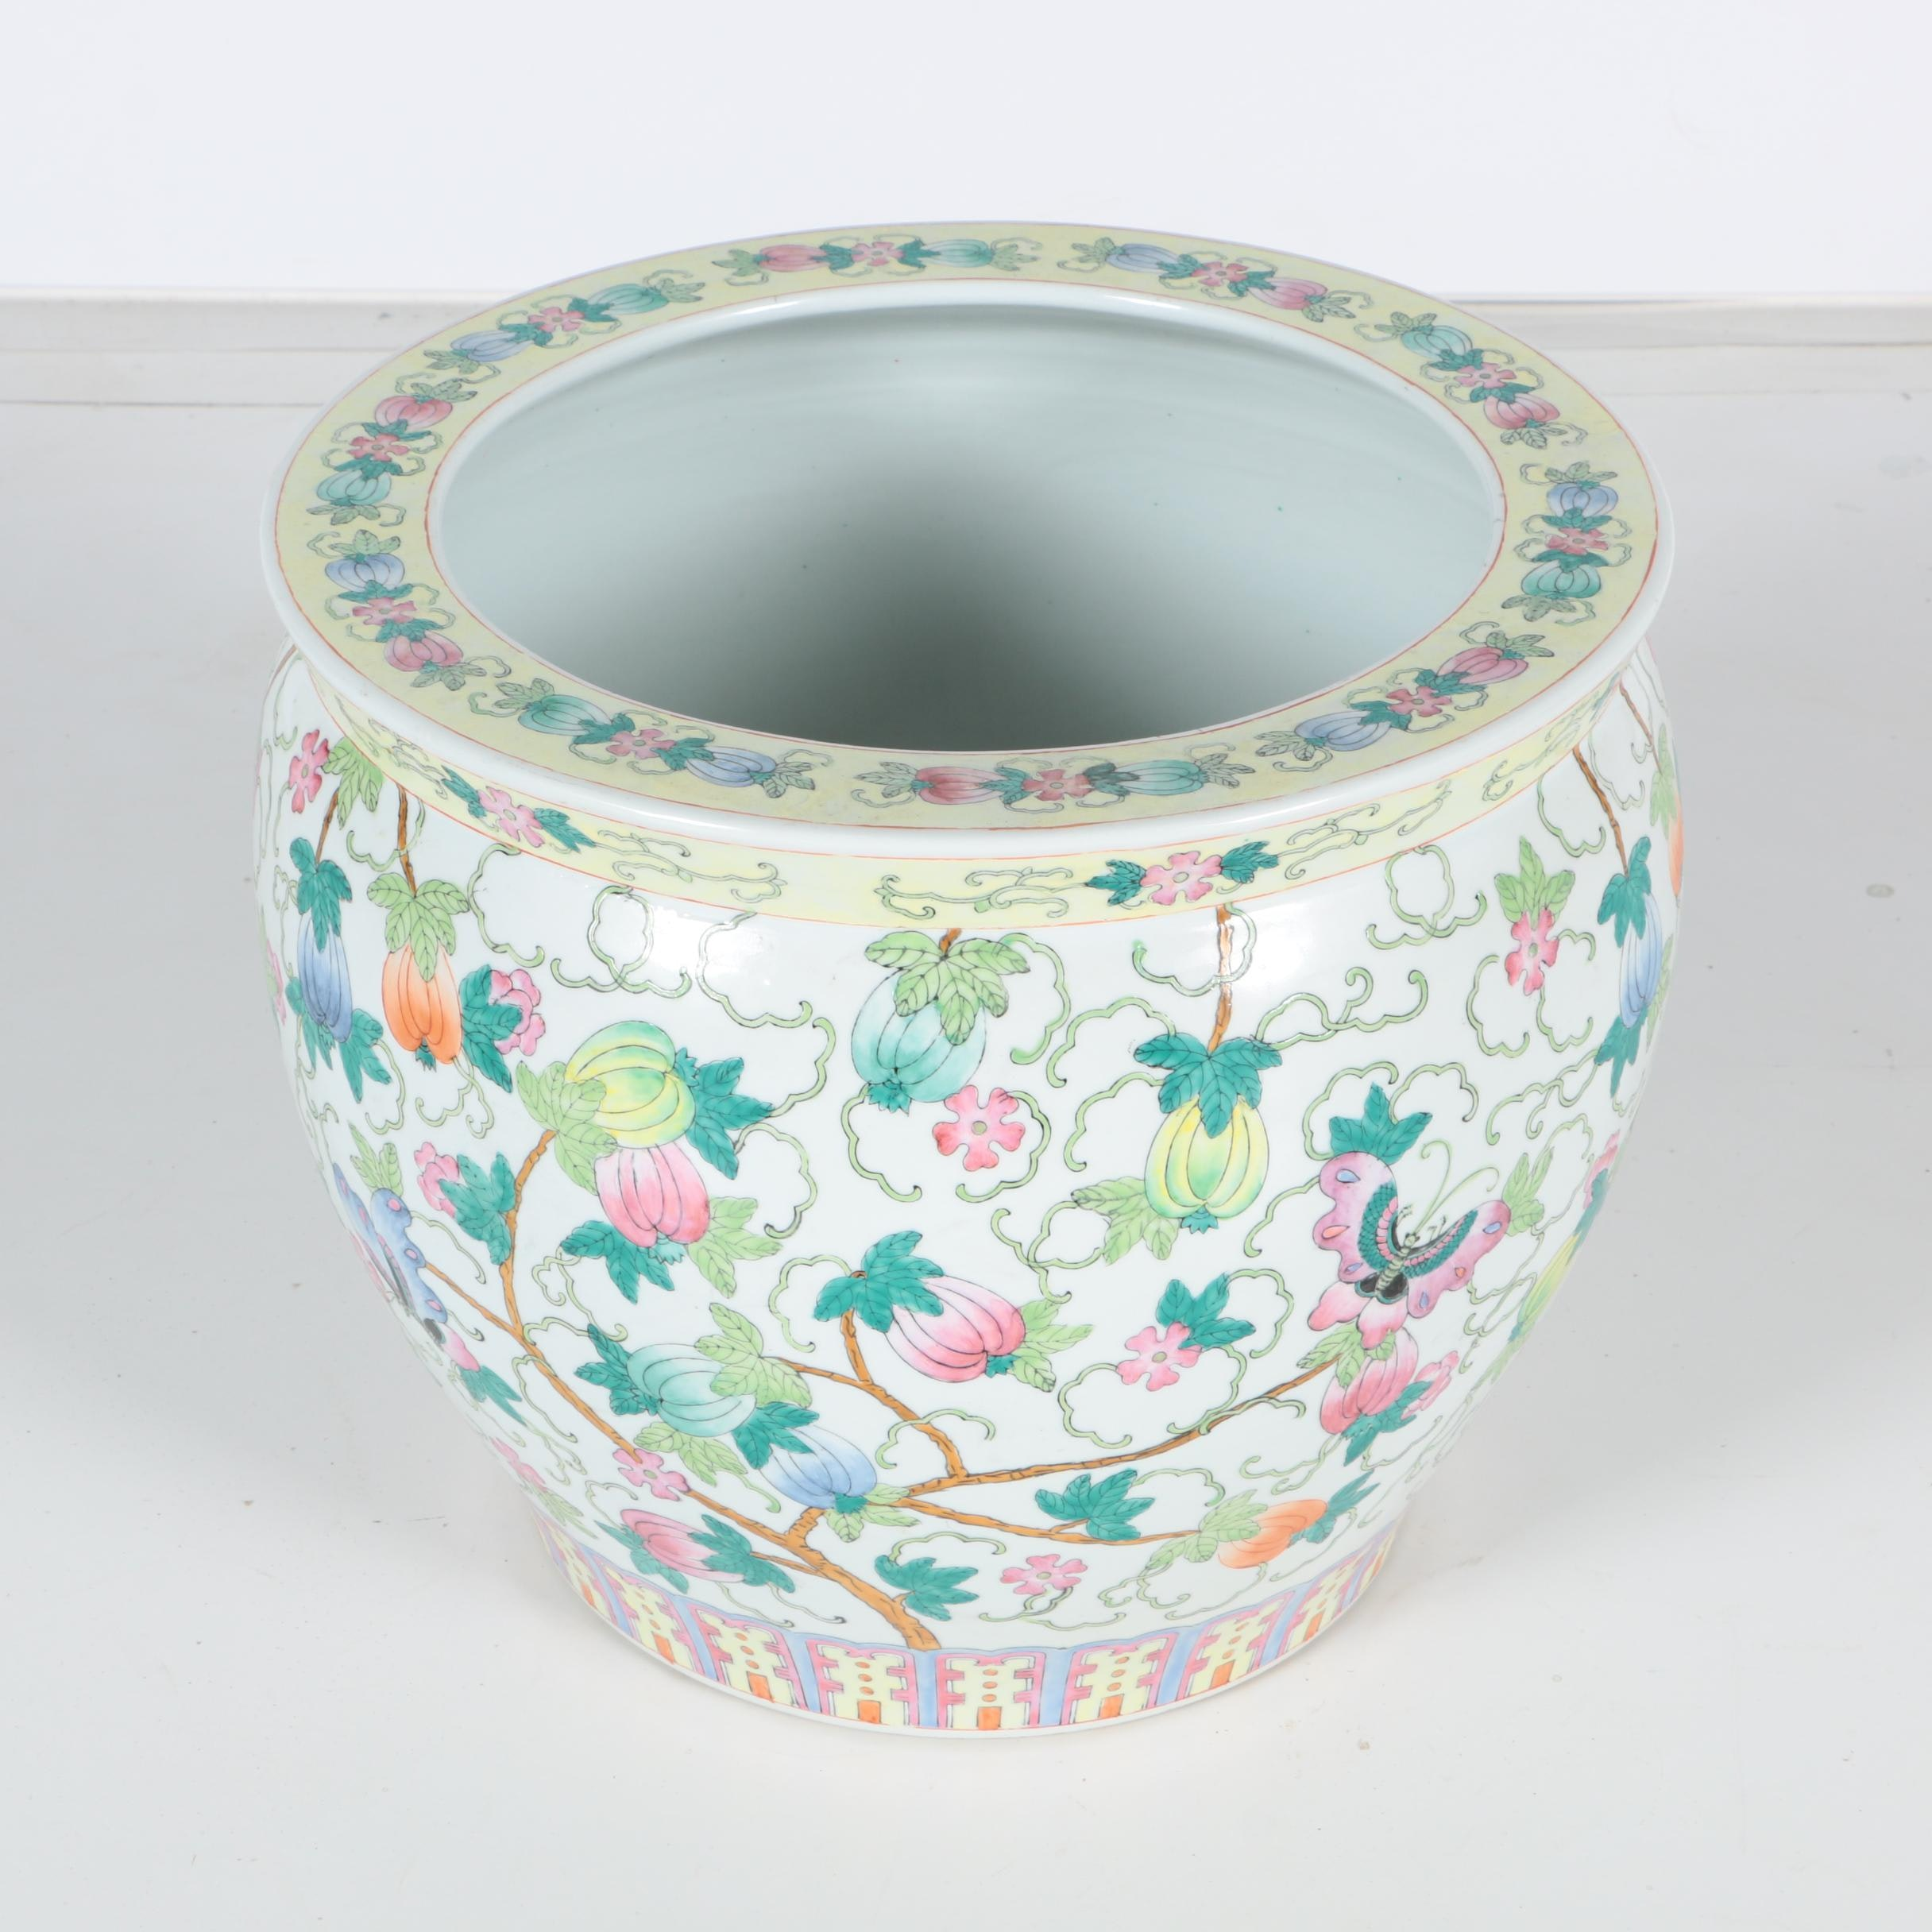 Floral Themed Chinese Ceramic Planter